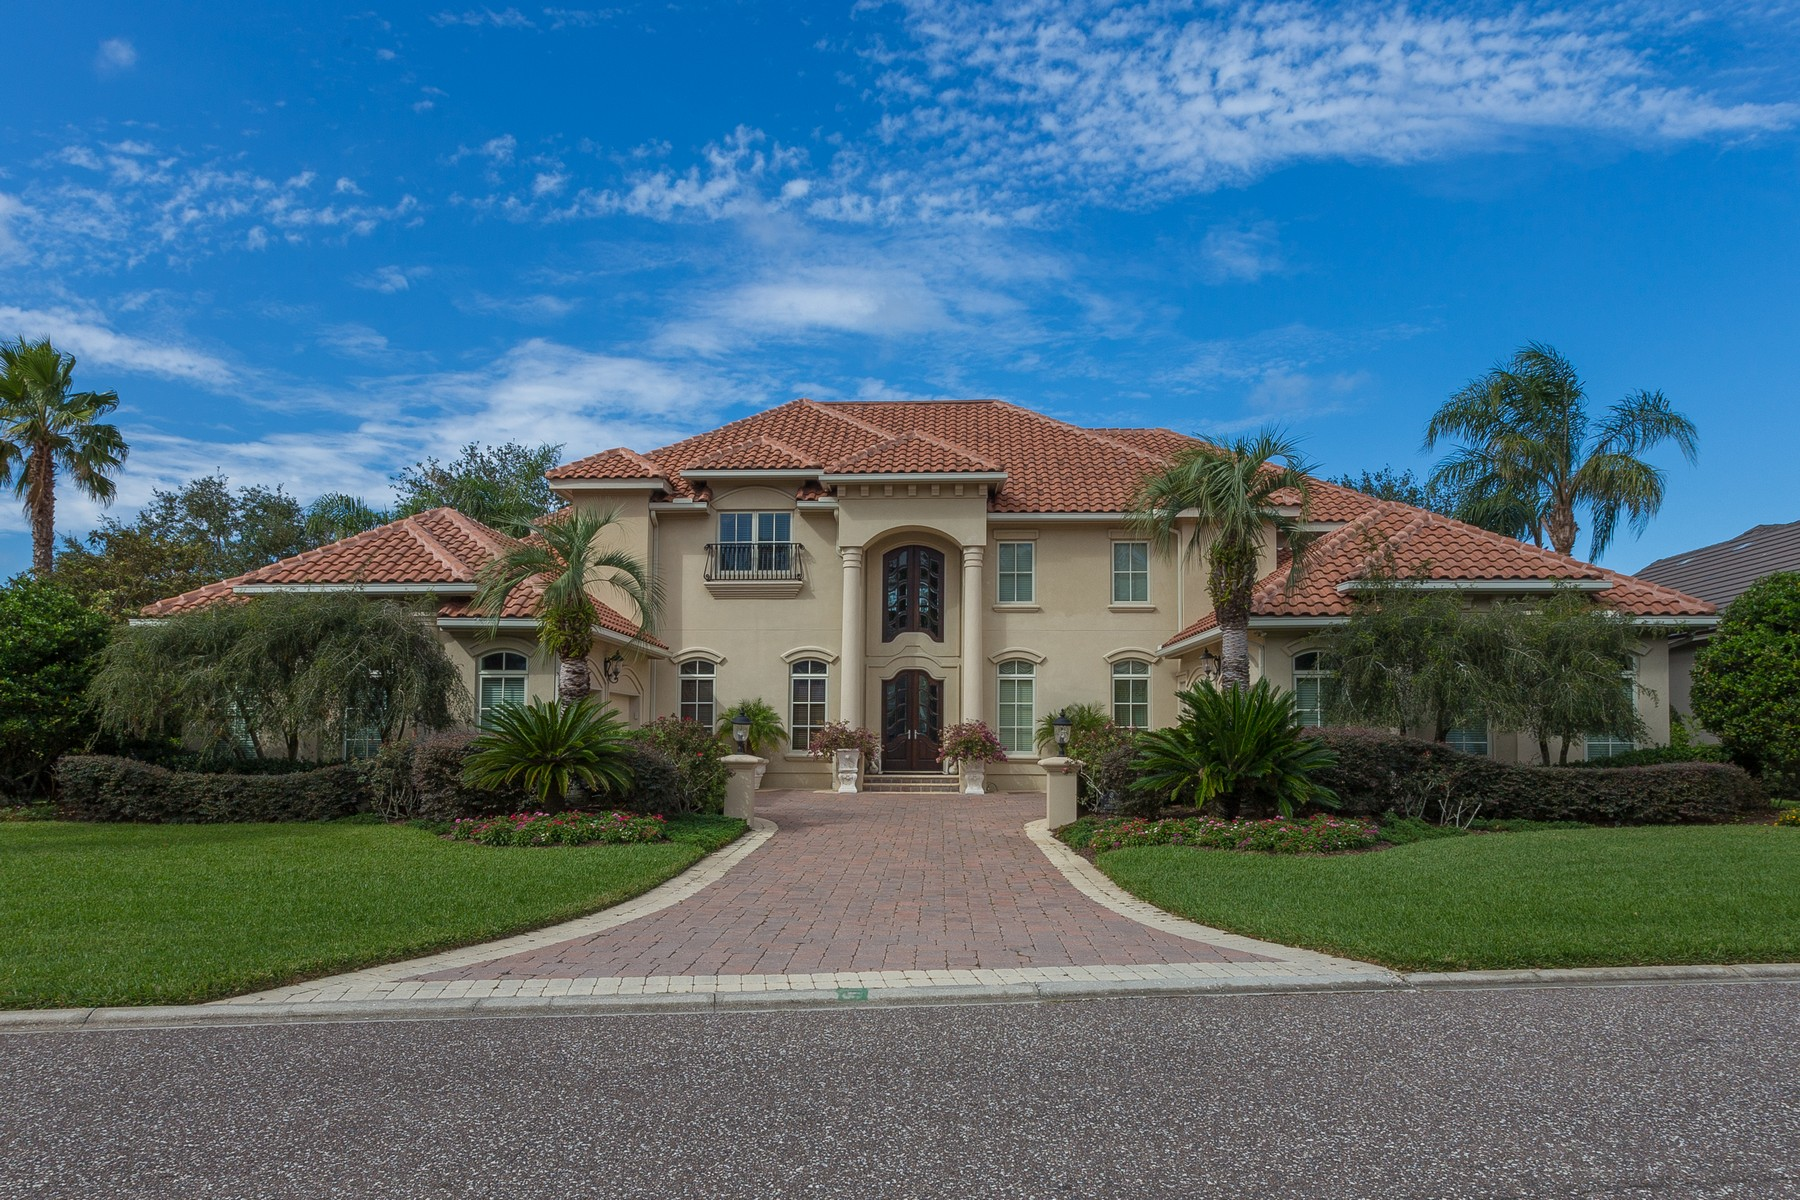 Single Family Home for Sale at 140 Muirfield Drive 140 Muirfield Drive Ponte Vedra Beach, Florida 32082 United States